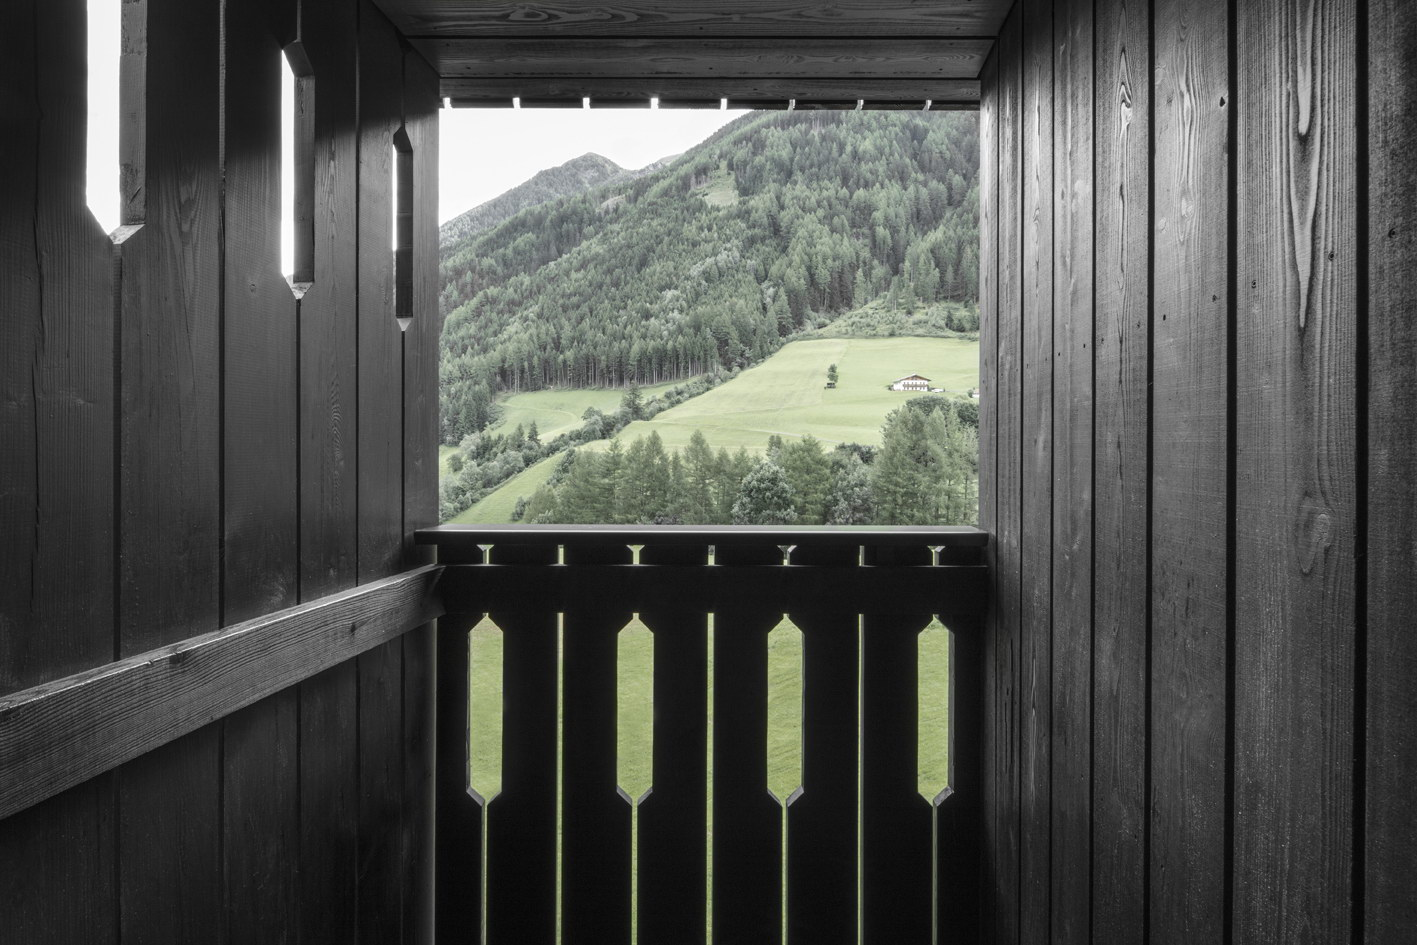 Hiking Hotel Bühelwirt by Pedevilla Architects